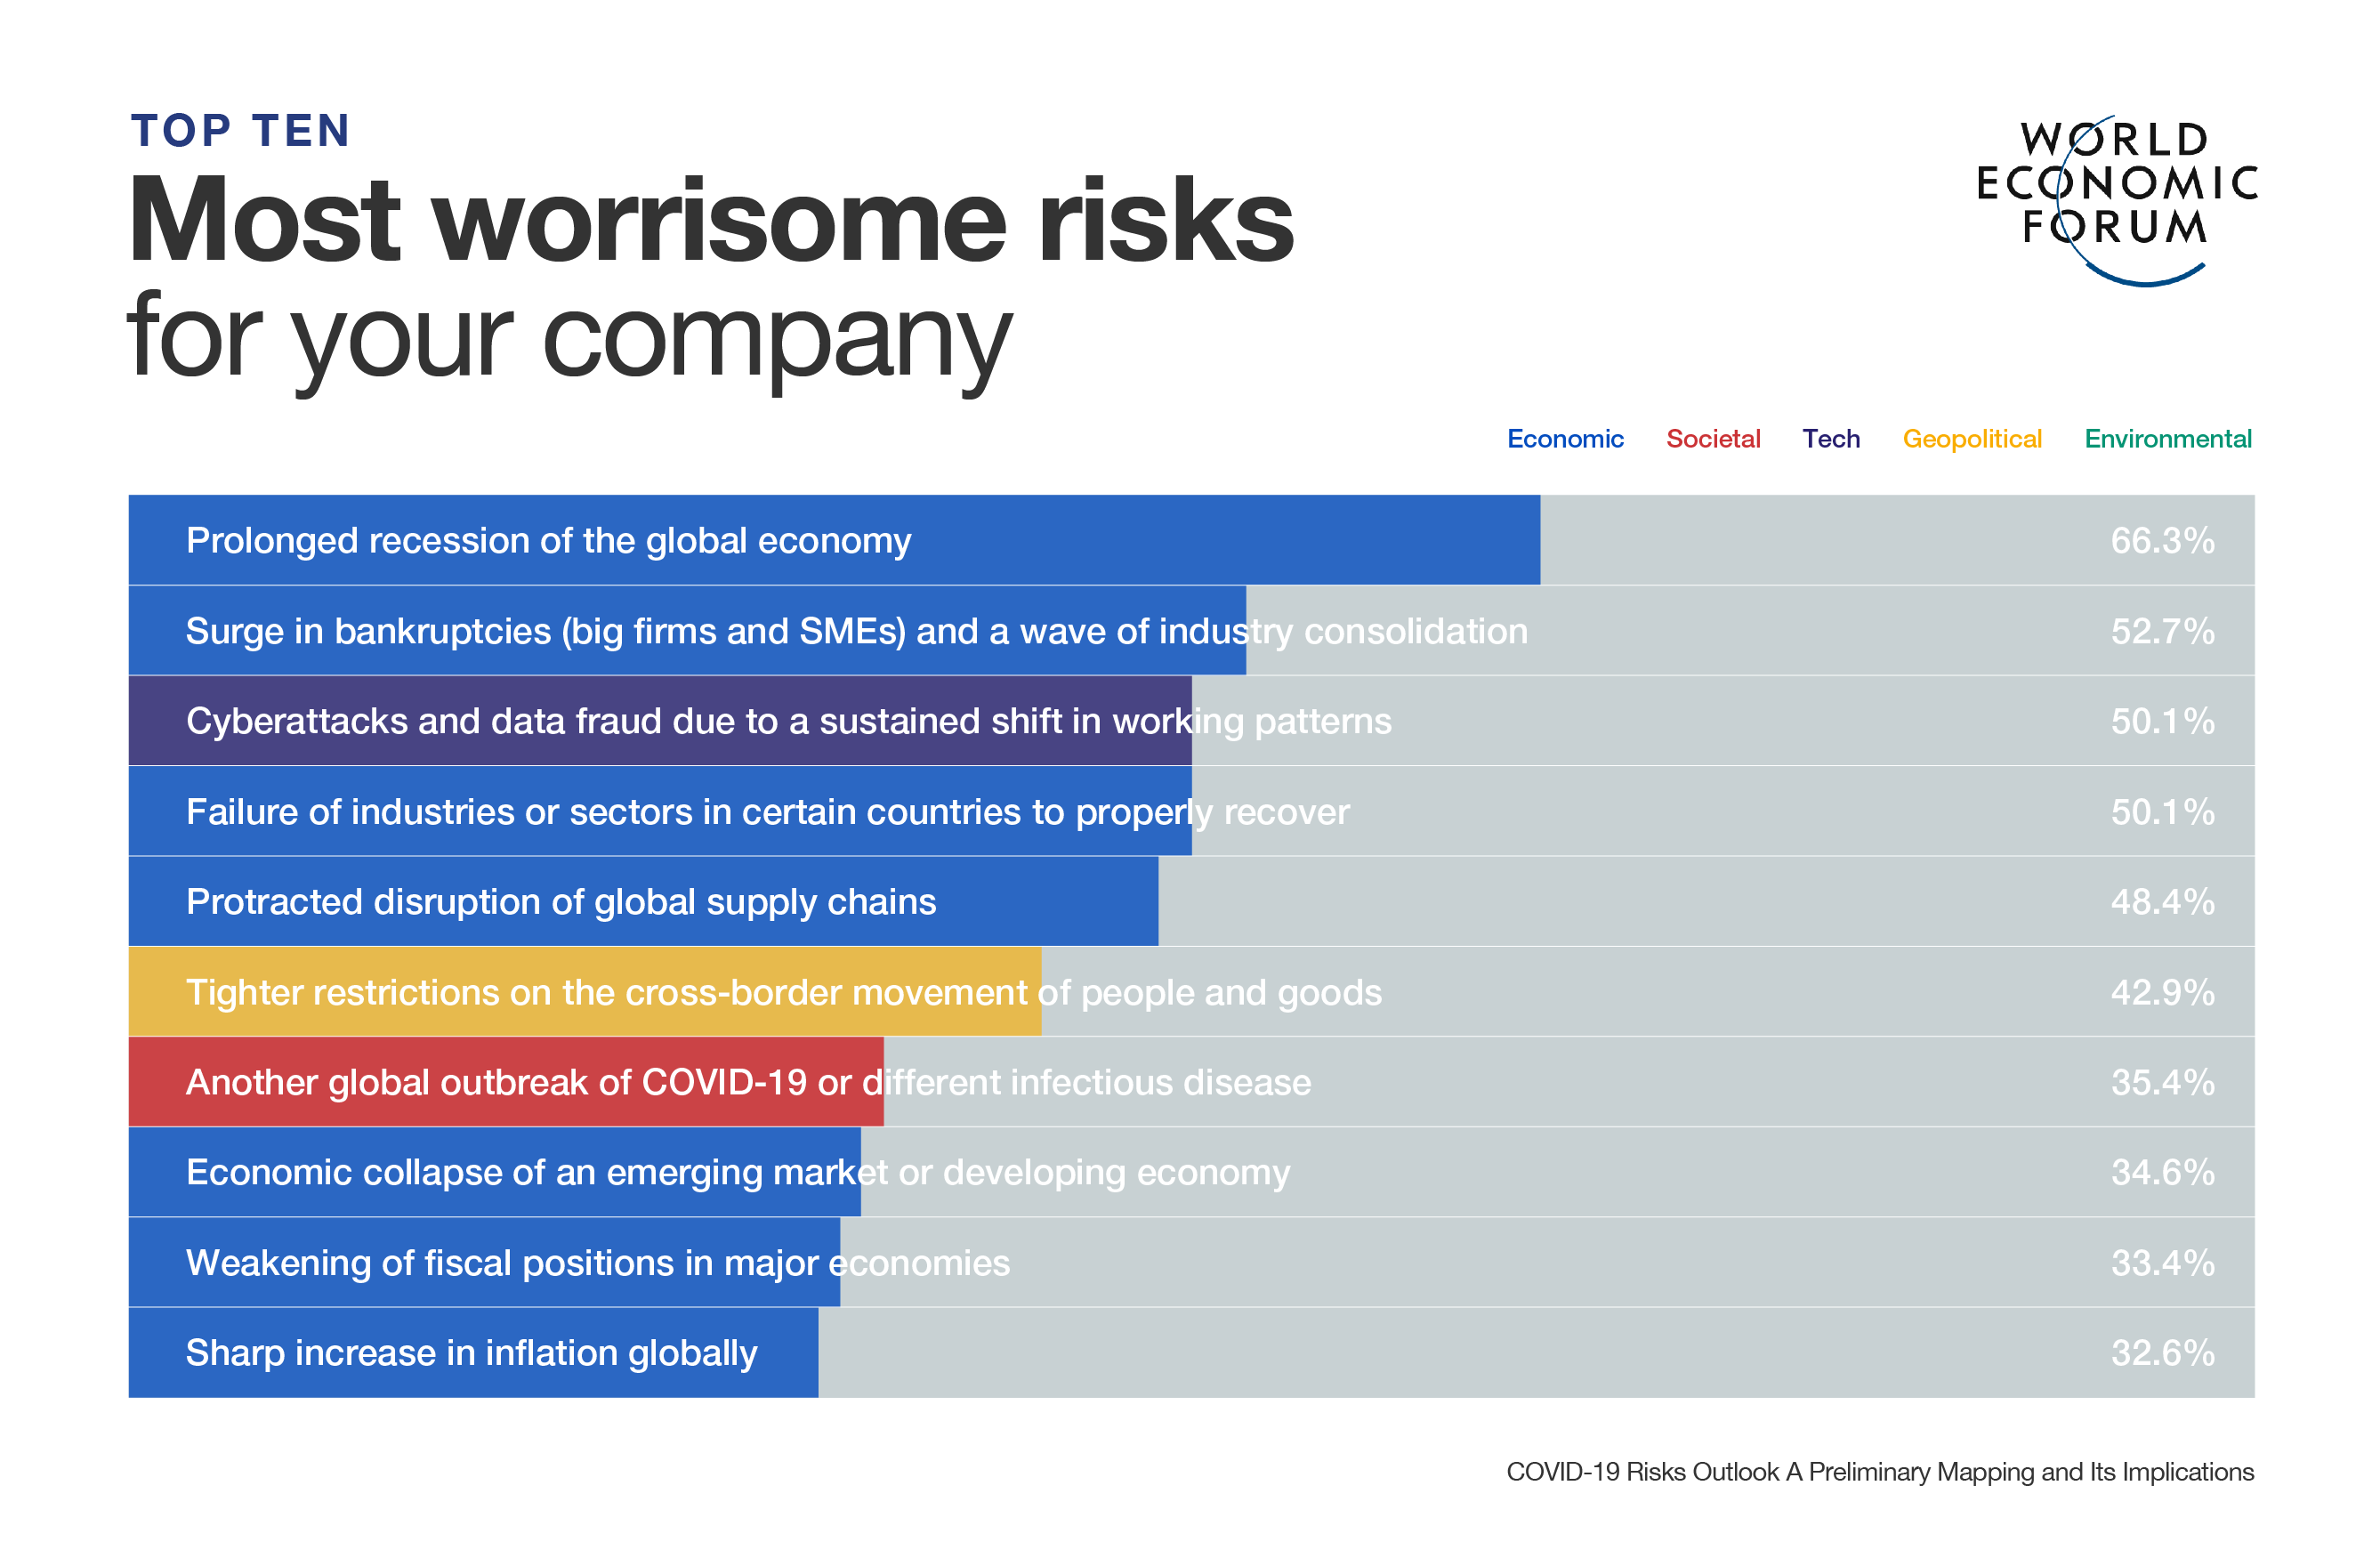 Most worrisome risks for your company during the COVID-19 pandemic